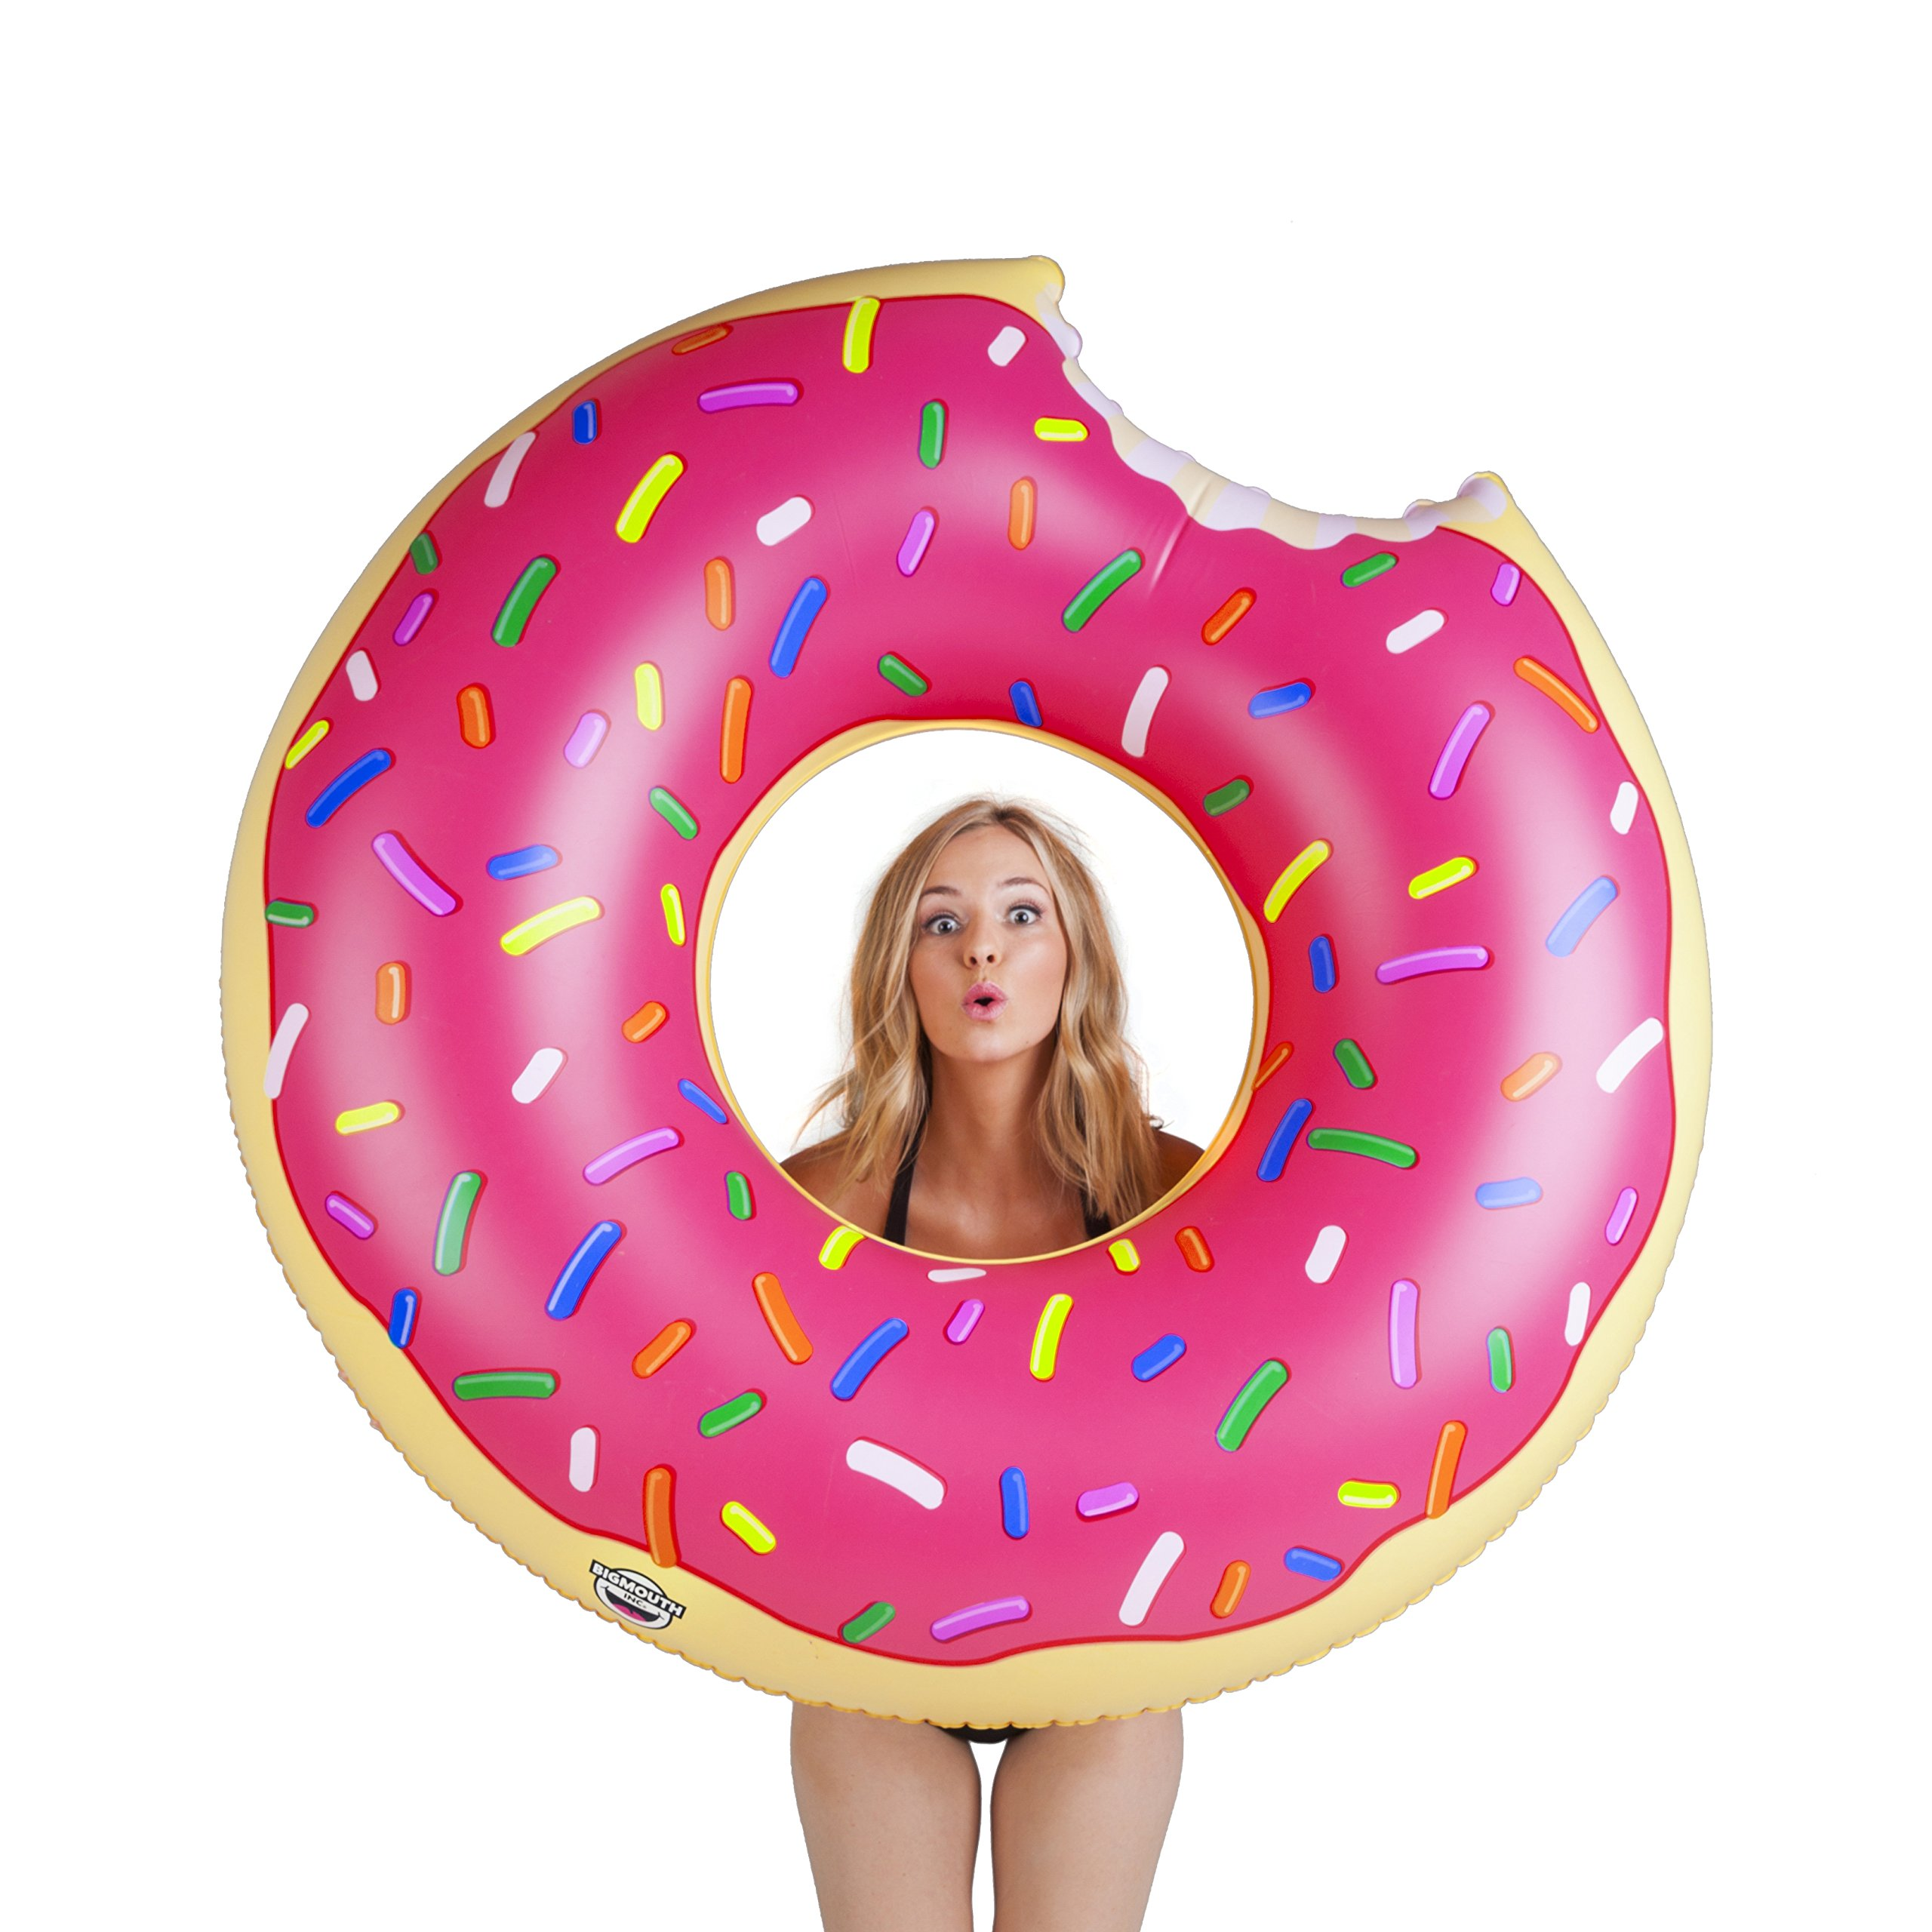 BigMouth Inc Gigantic Donut Pool Float, Funny Inflatable Vinyl Summer Pool or Beach Toy, Patch Kit Included by BigMouth Inc